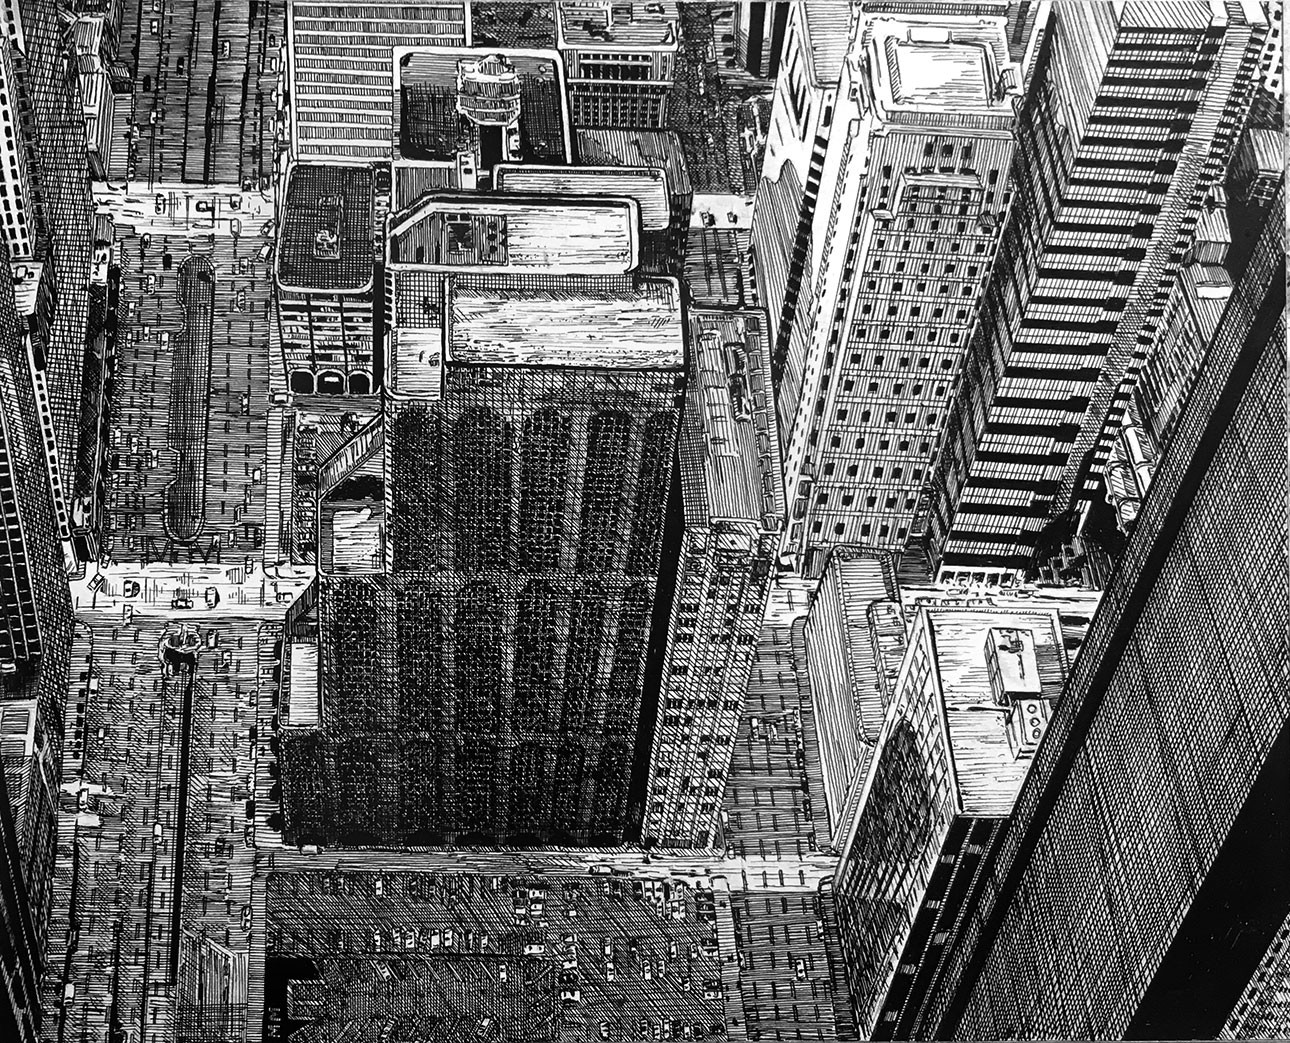 "8"" x 10"" pen and ink drawn from a photo I took on the Sears Tower (now Willis Tower) skydeck in Chicago."